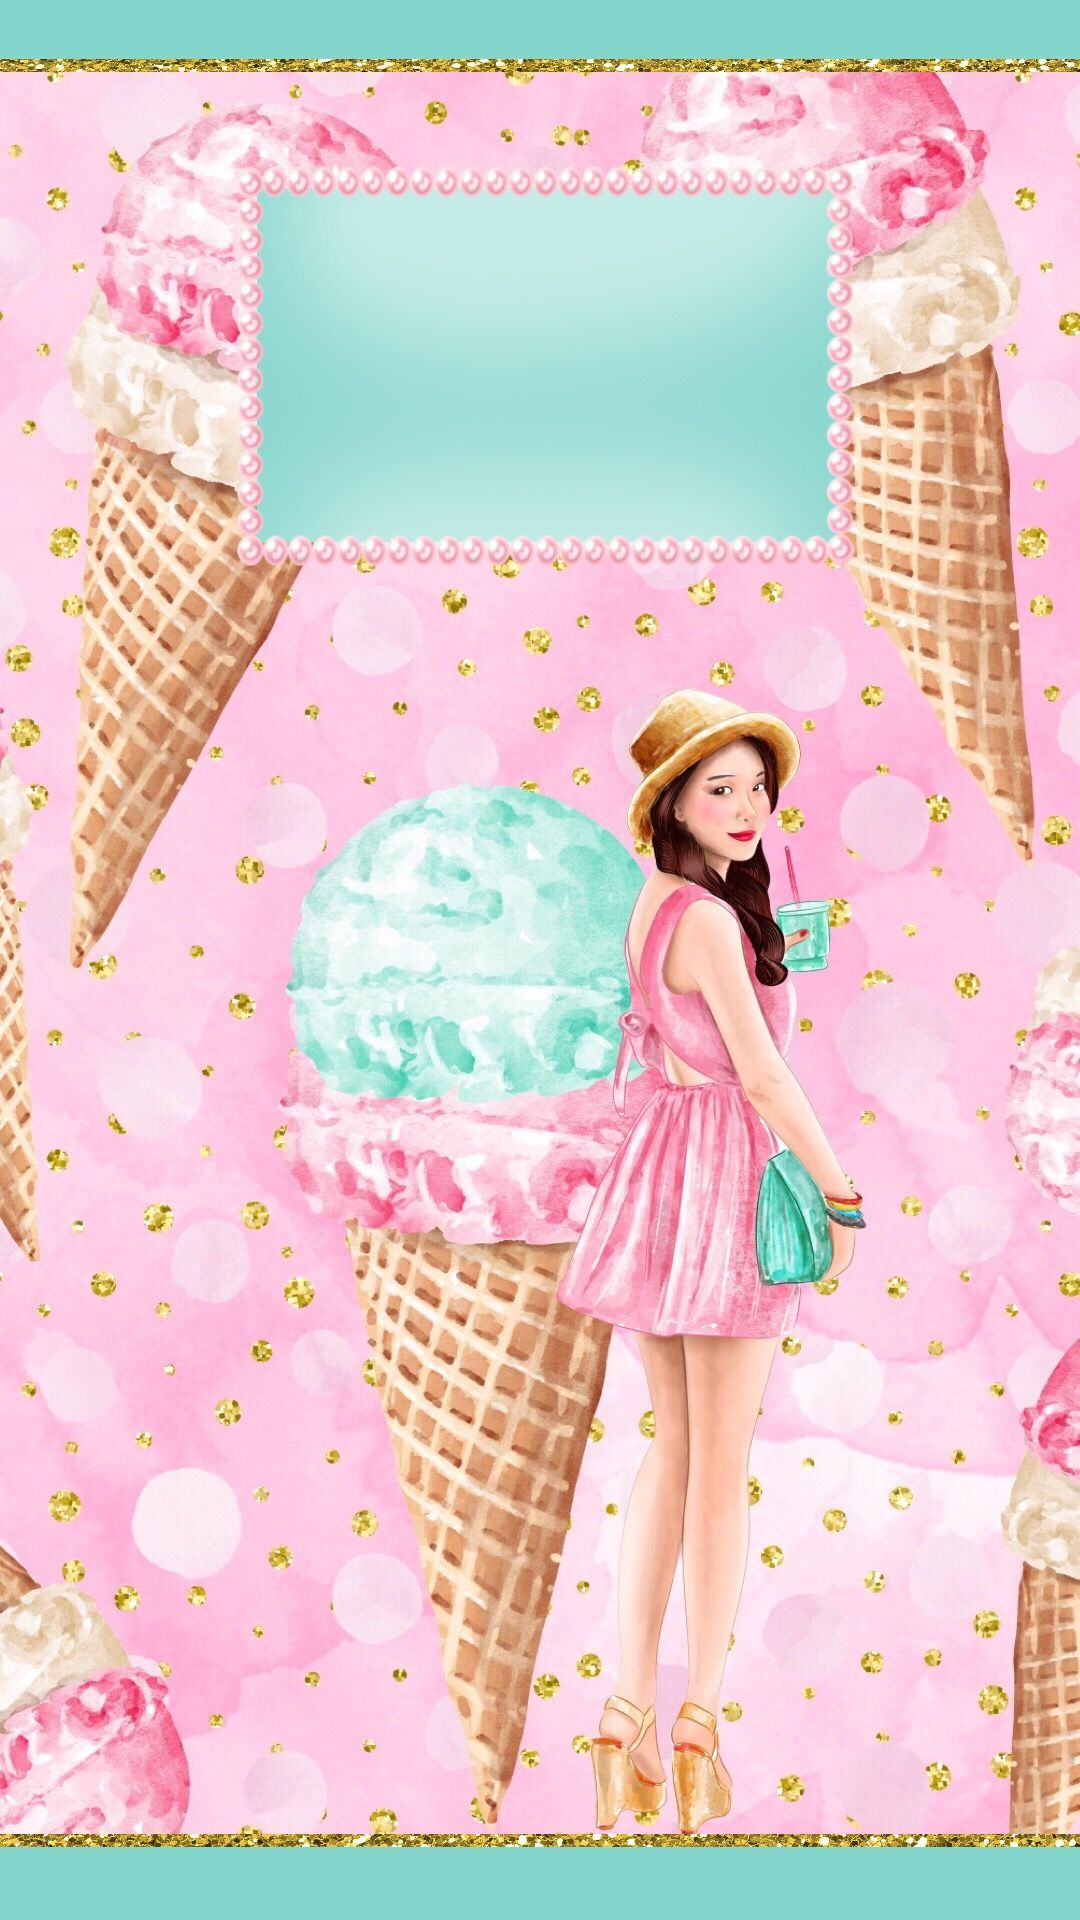 Pin by Kween541 on Wallpapers Fashion wallpaper, Great